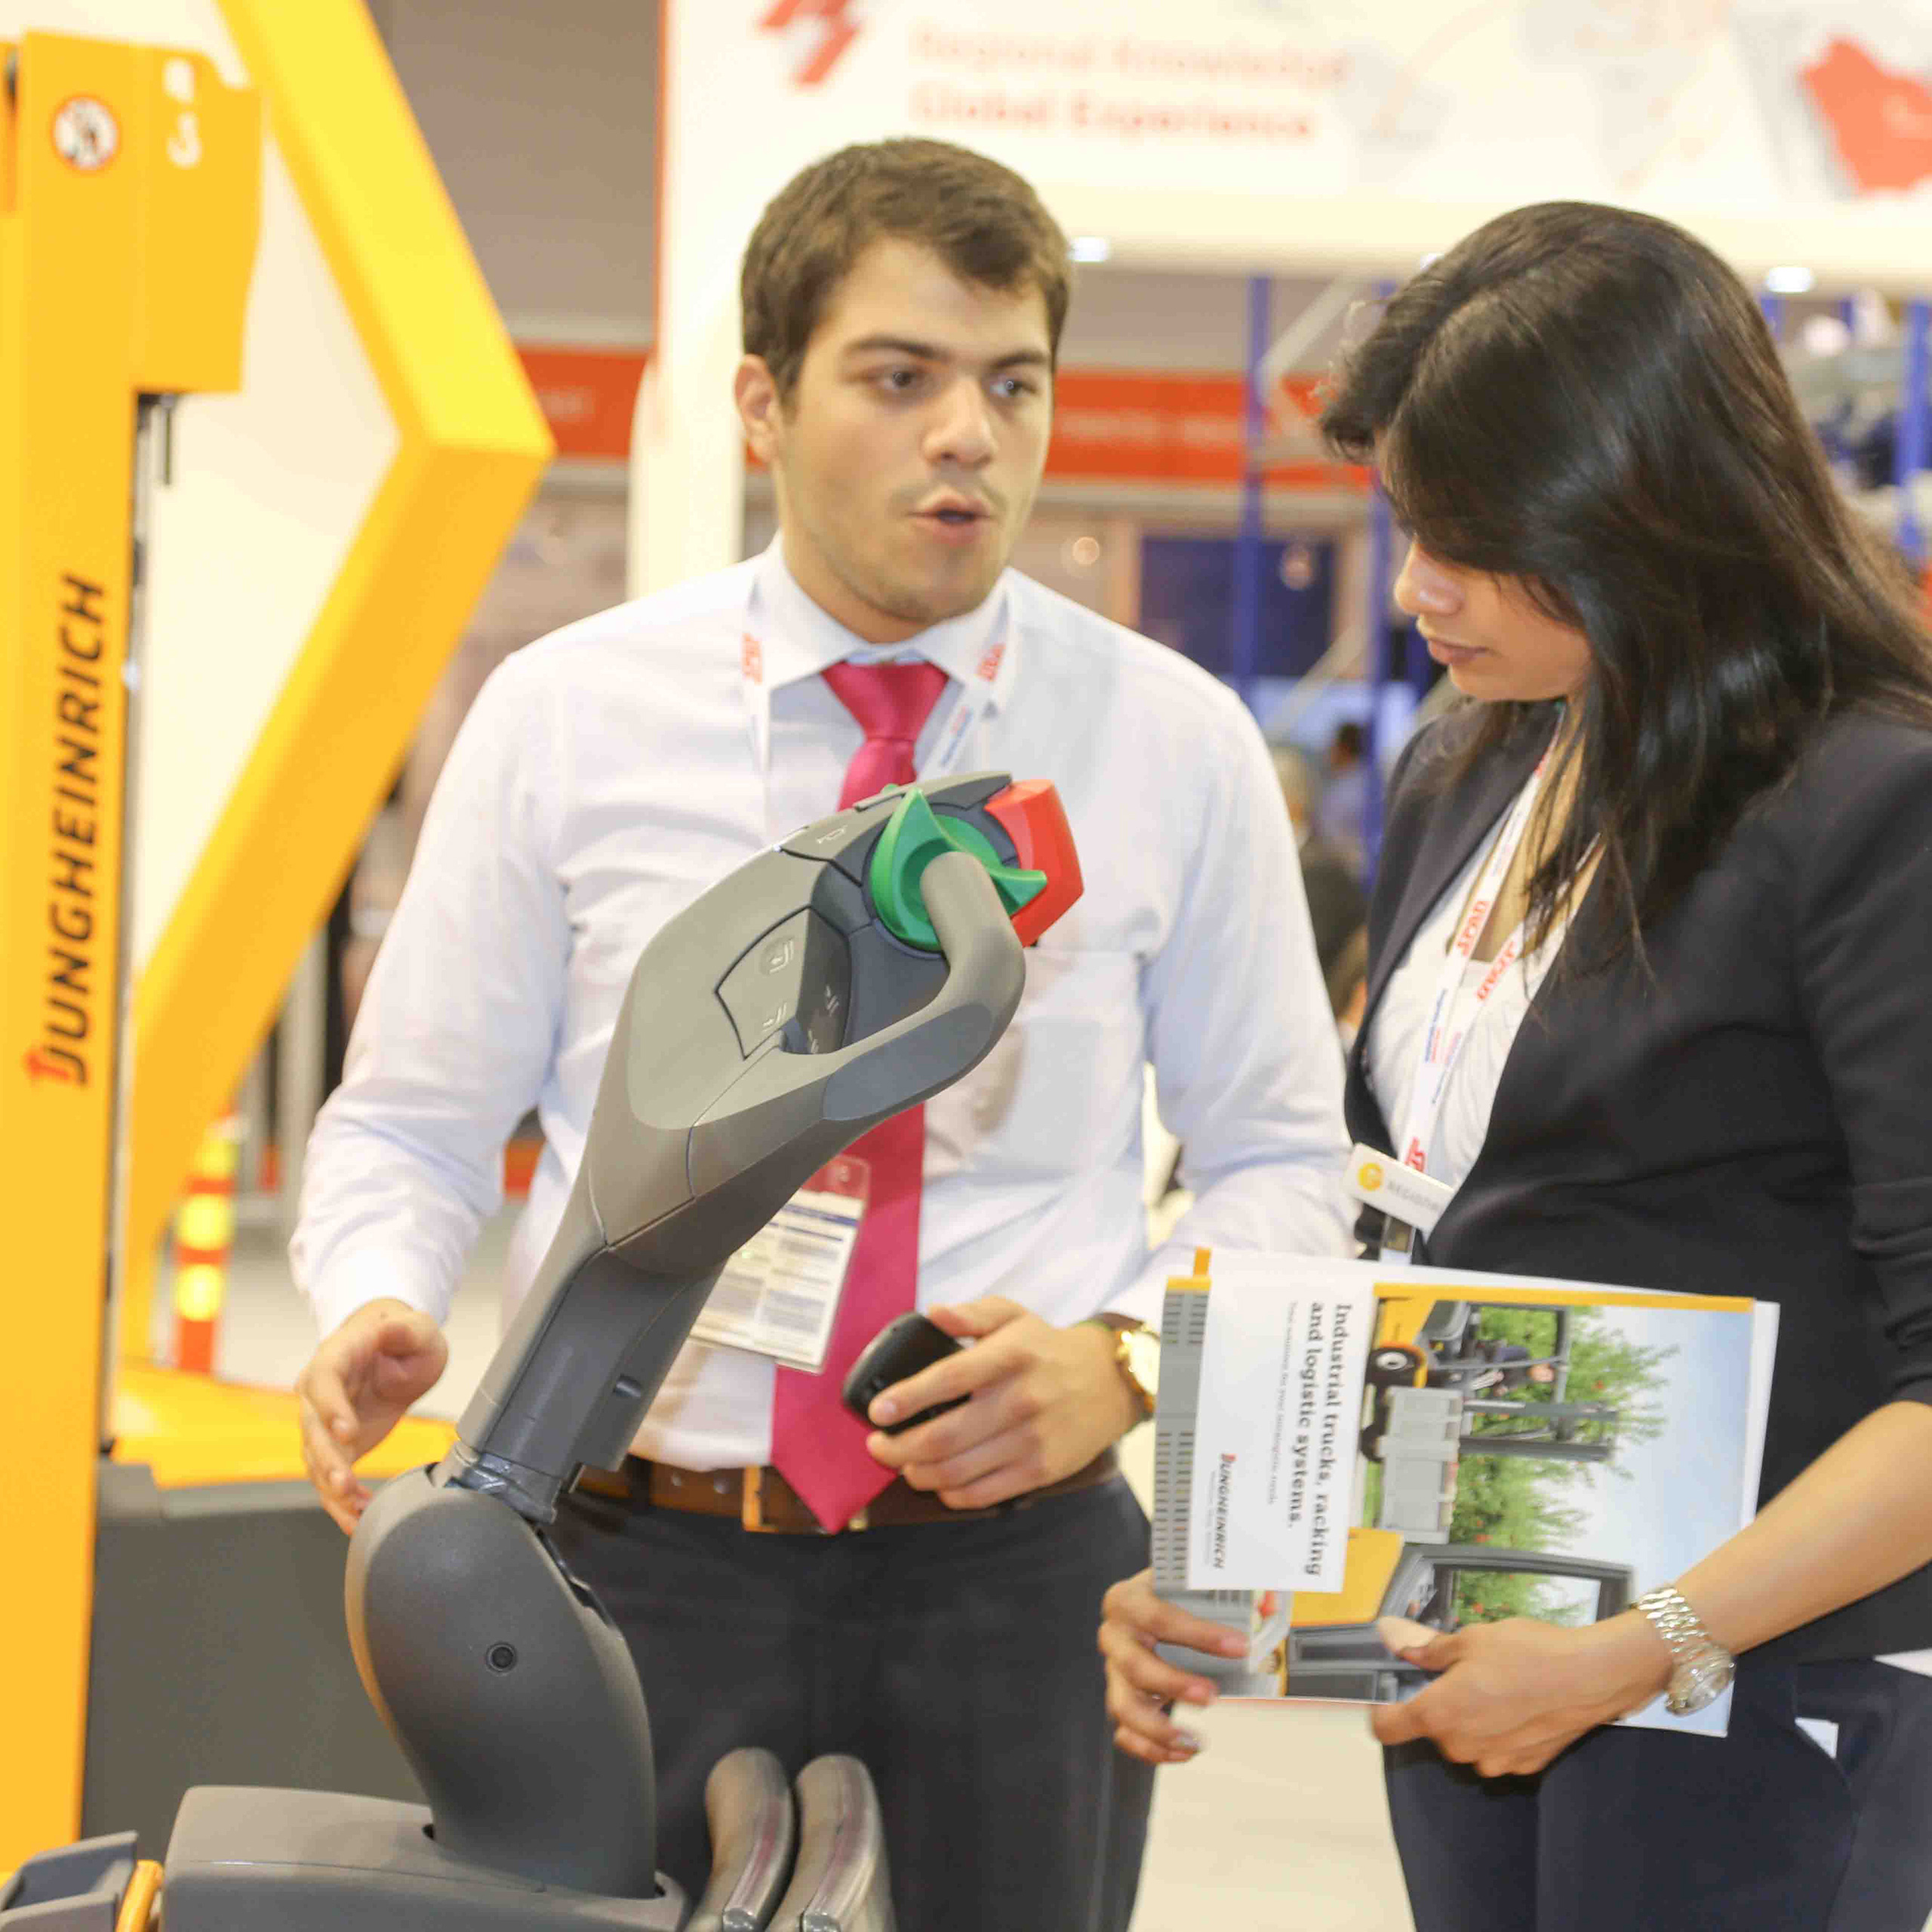 Materials Handling Middle East - Automation and Industry 4.0 among central themes solving key challenges at Materials Handling Middle East 2017